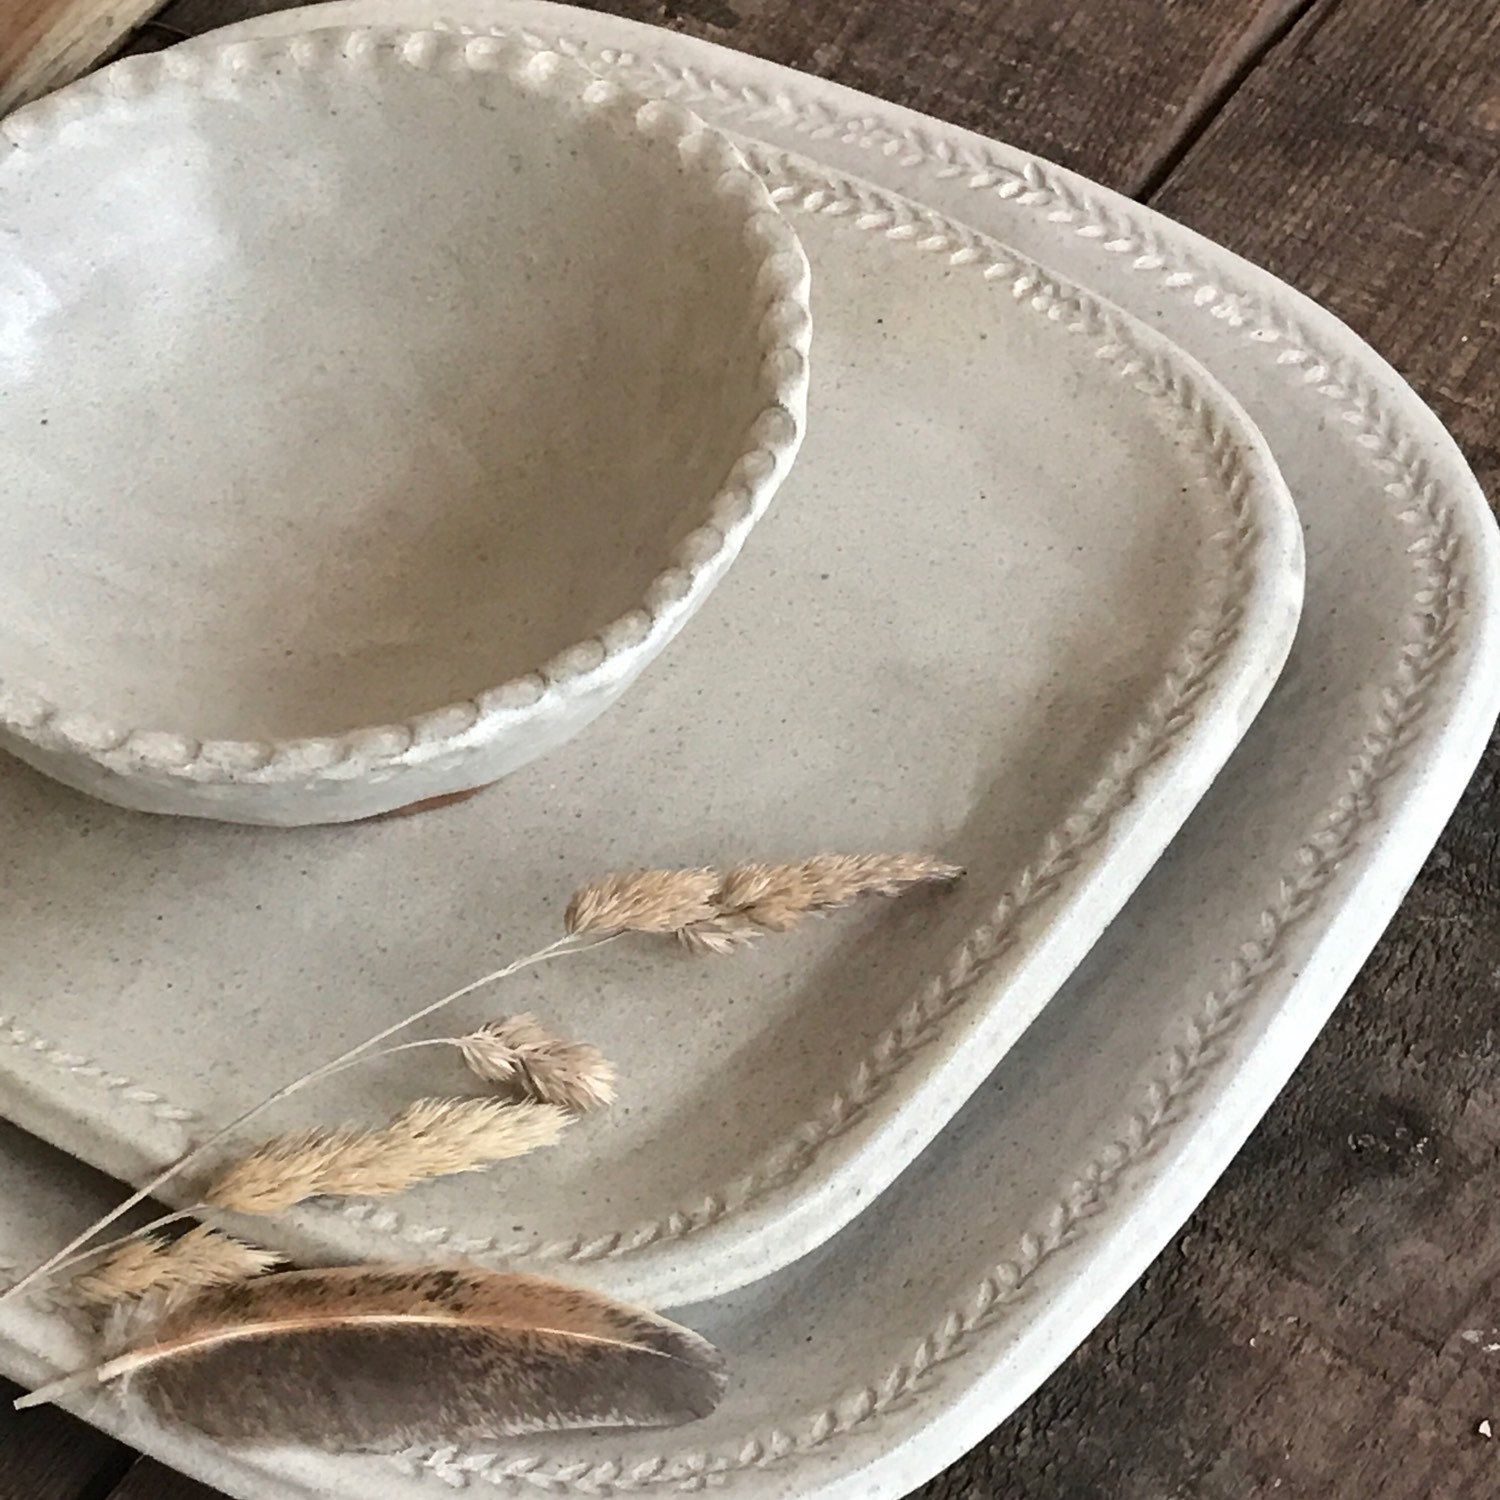 Farmhouse White Square Dinnerware Sets With Flower Vine Edging Made To Order Simple Rustic Dinnerware Sets Rustic Rustic Dinnerware Farmhouse Dinnerware